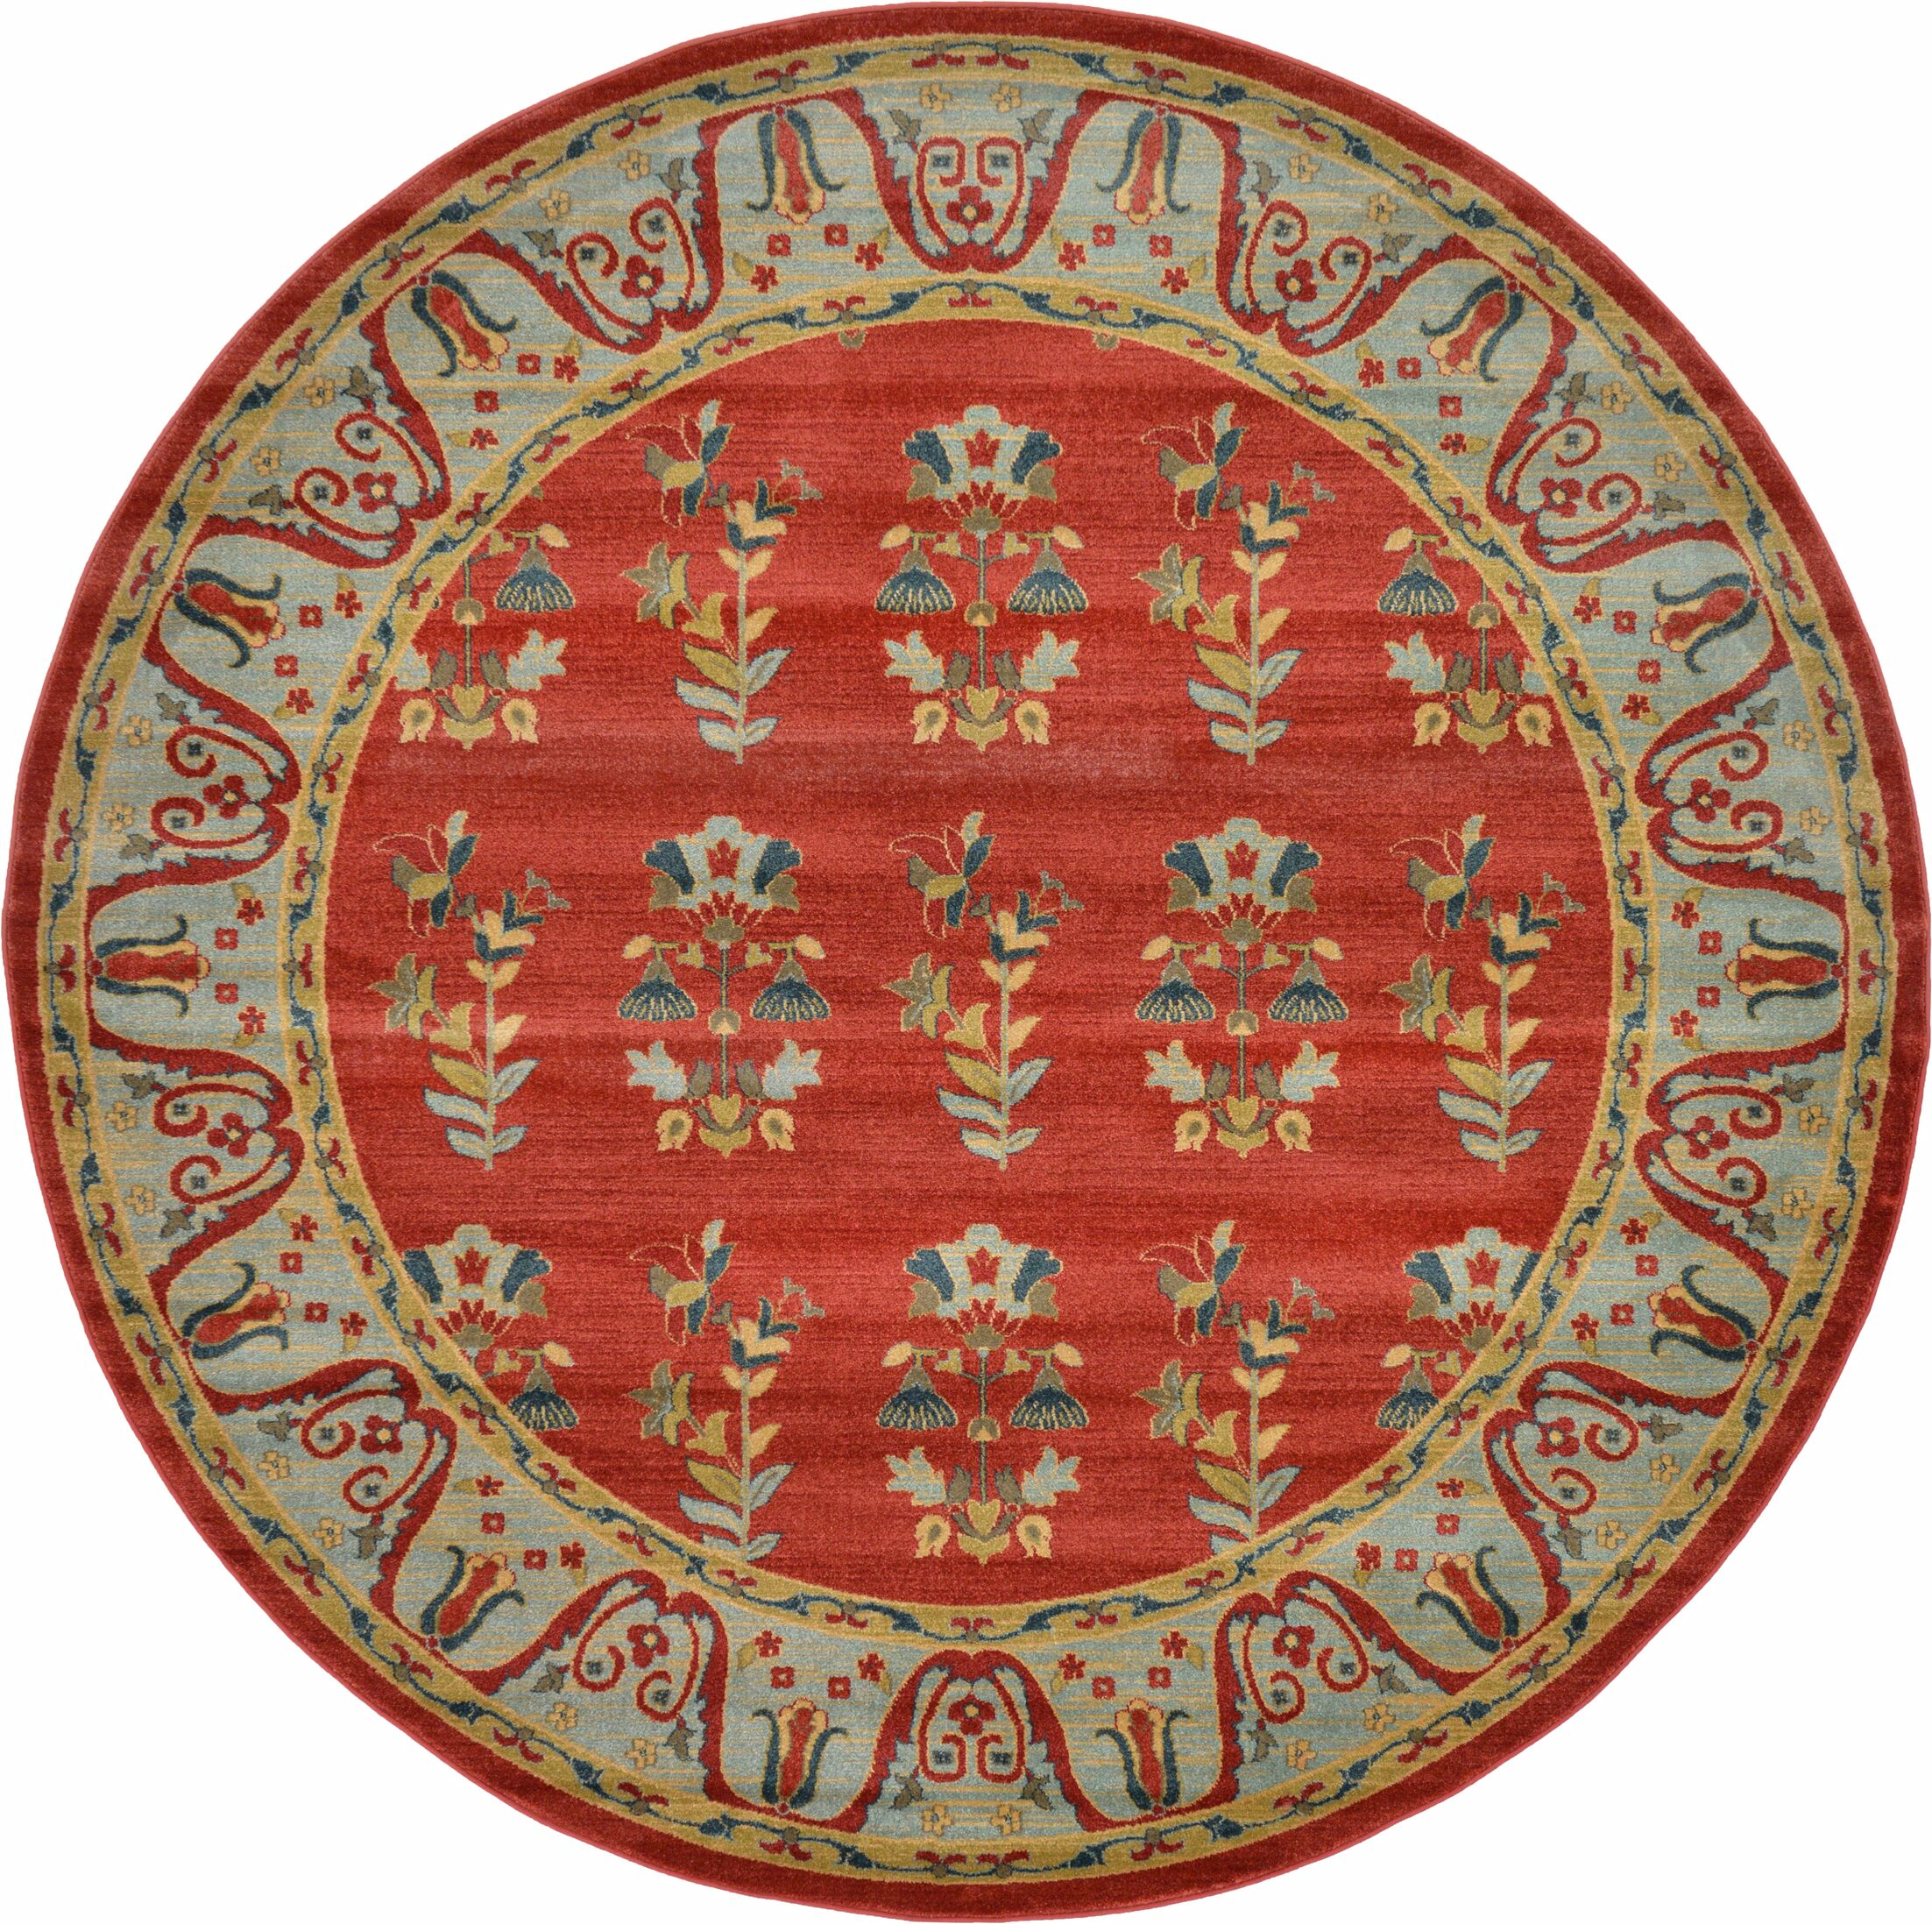 Foret Noire Red Area Rug Rug Size: Round 8'